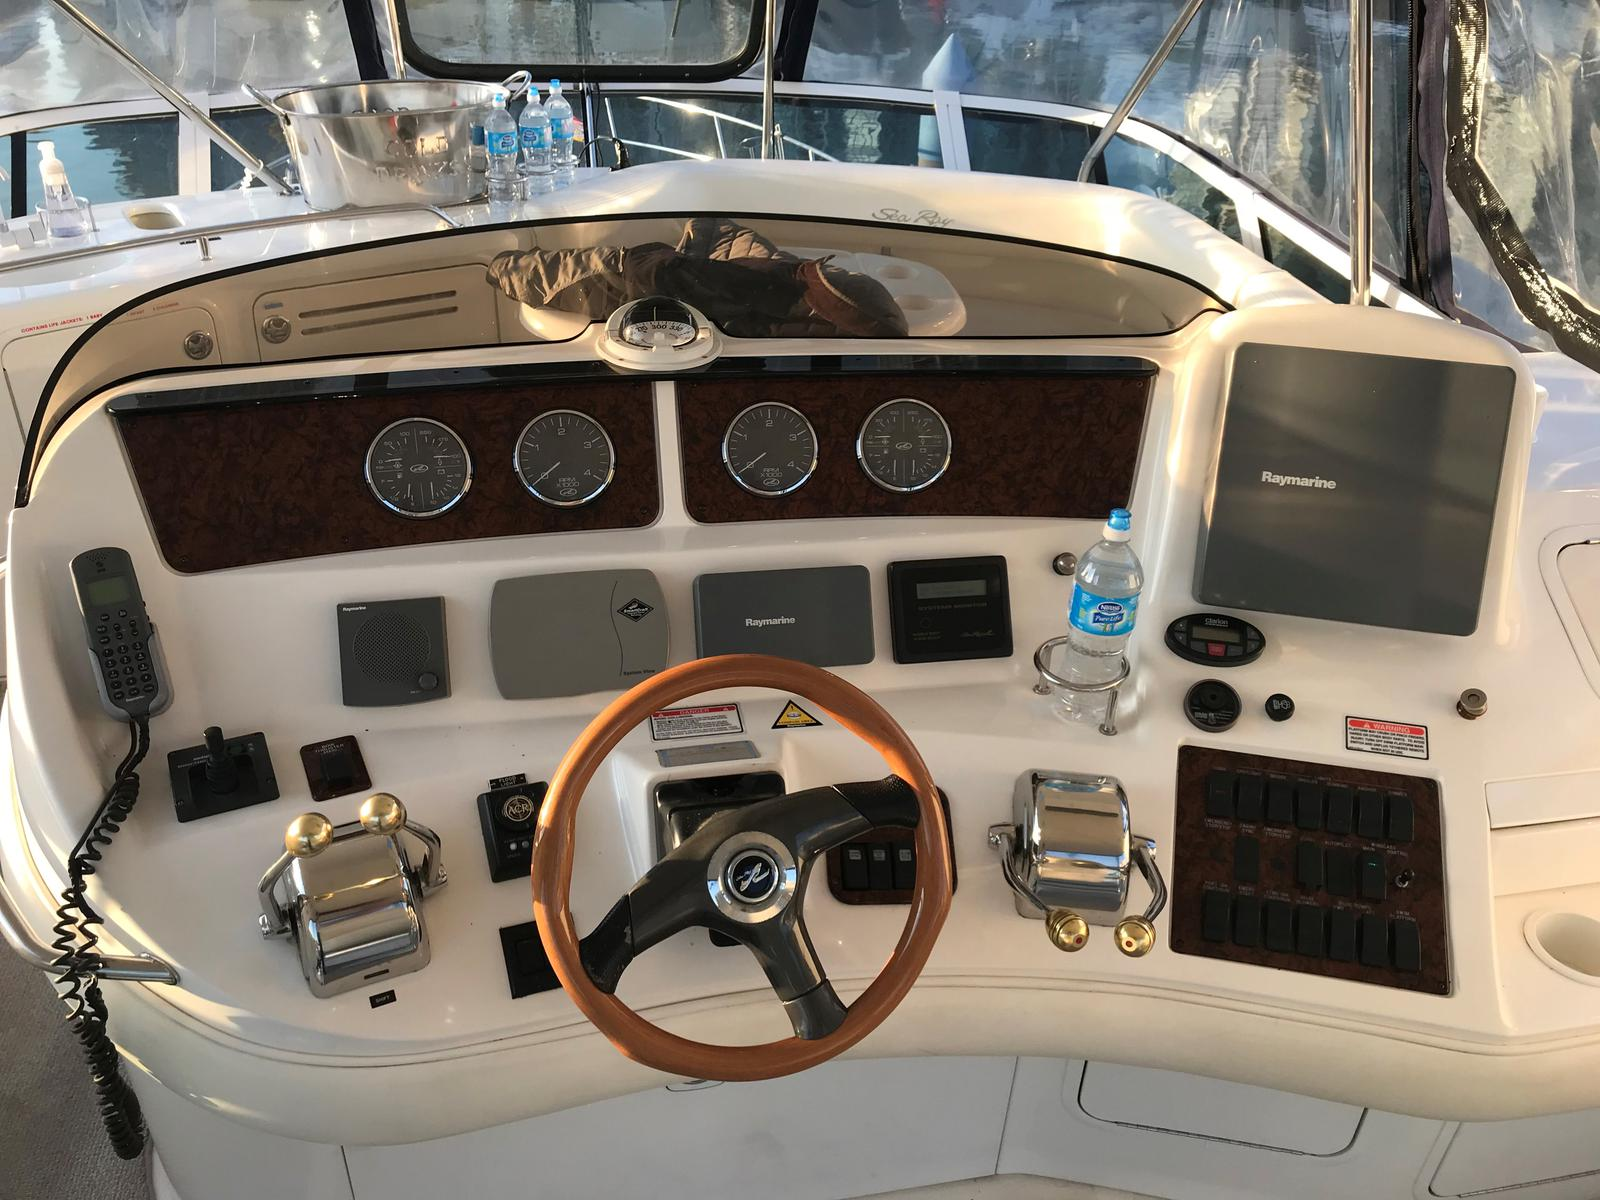 2004 Sea Ray boat for sale, model of the boat is 48 Sedan Bridge & Image # 2 of 12